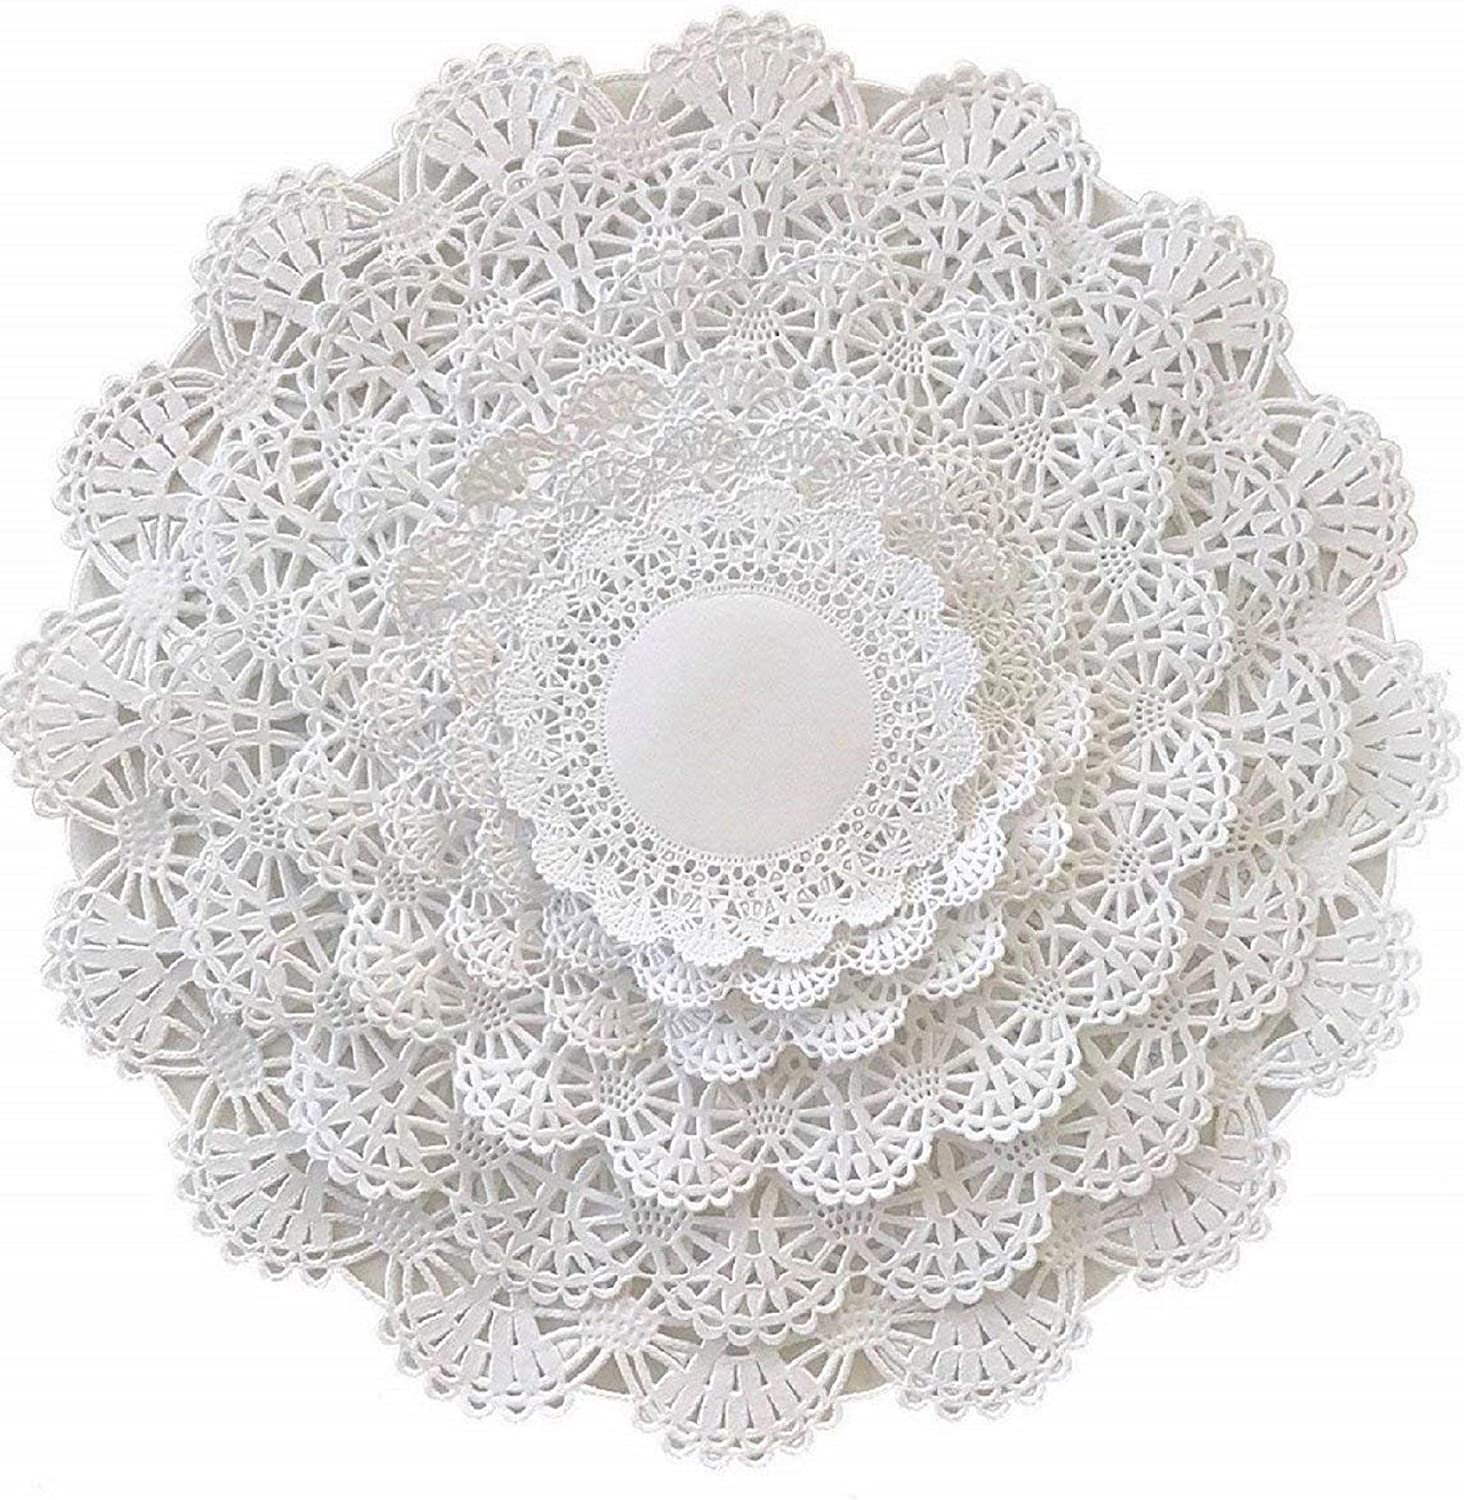 10 Paper Doilies Ideal for Card Making//Scrapbooking